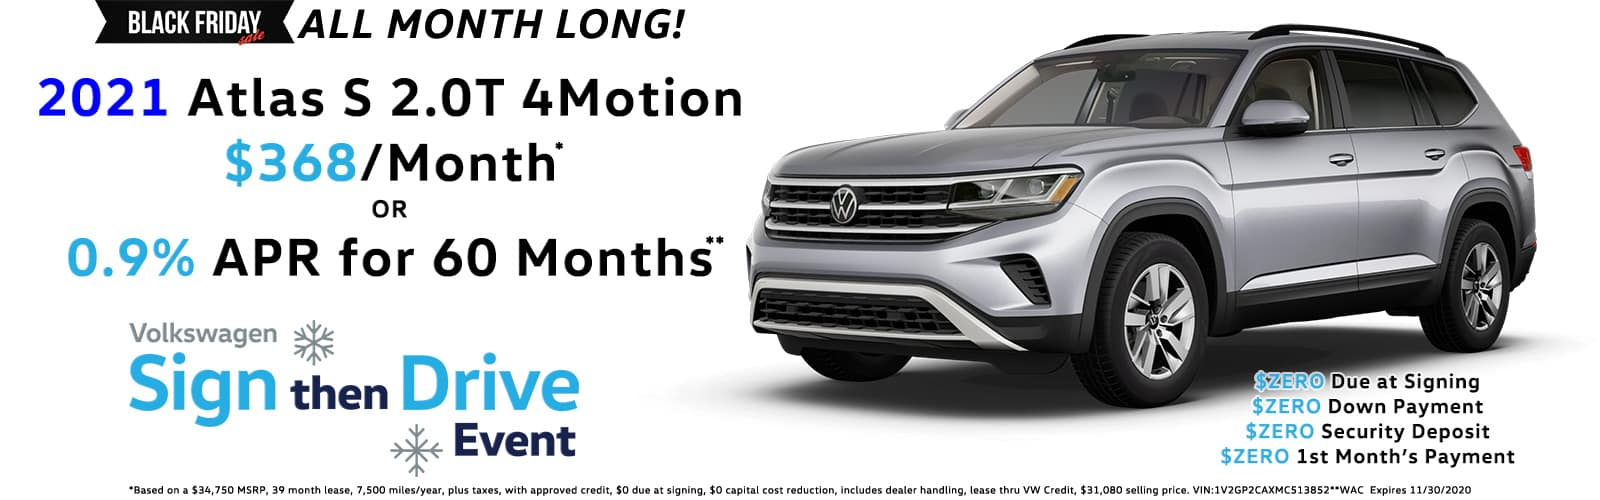 Sign Then Drive Special - 2021 VW Atlas